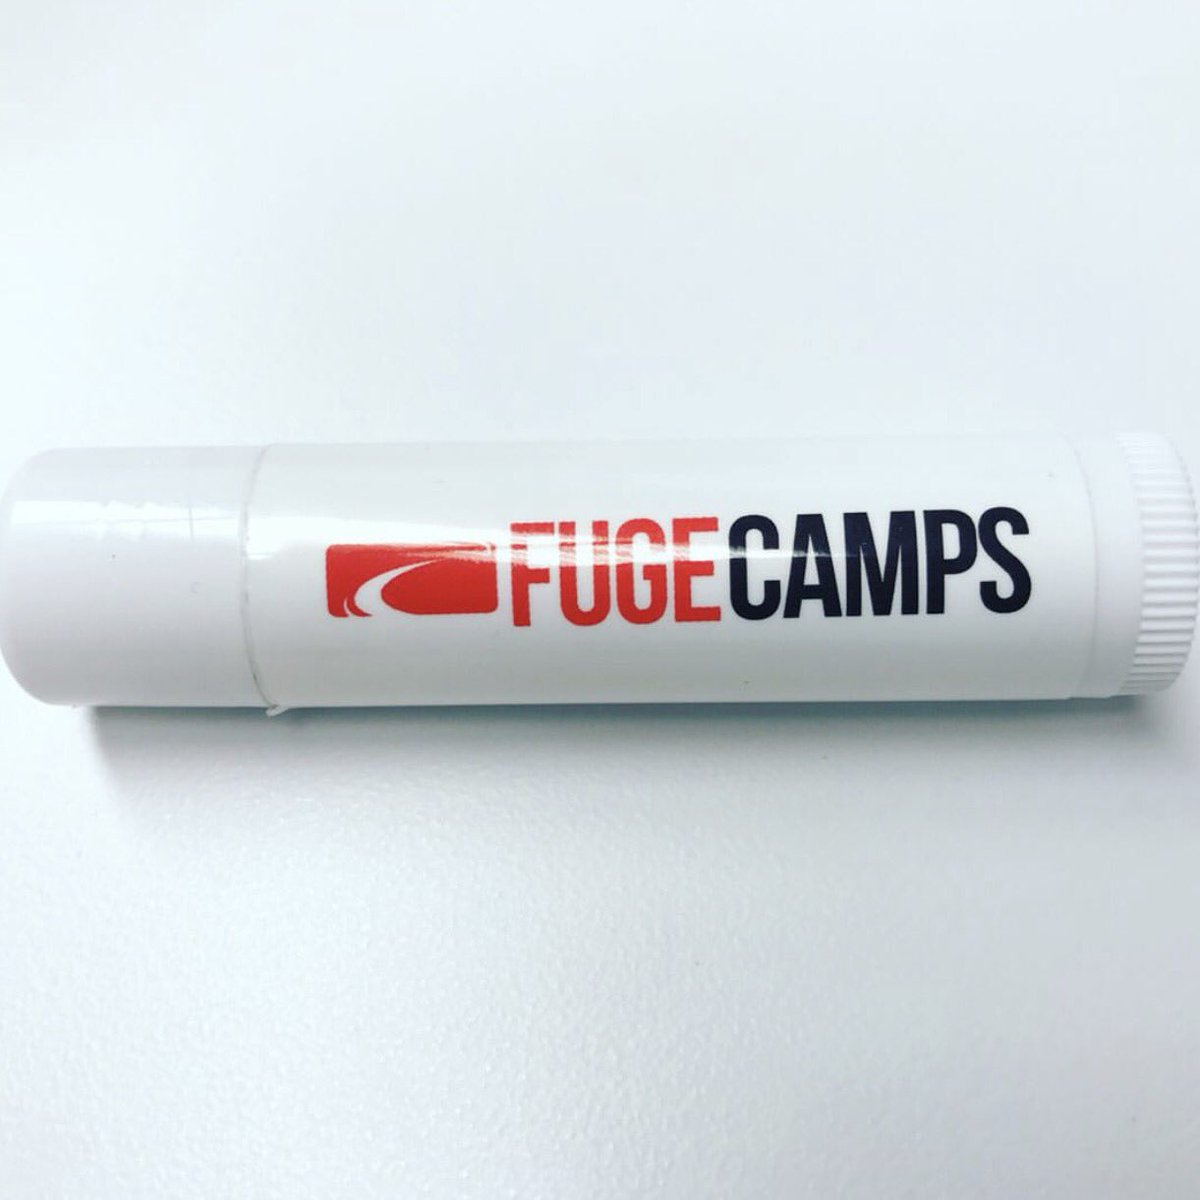 test Twitter Media - EVEN MORE FUN FUGE STORE ITEMS!! #fugestoresneakpeek https://t.co/ZsJsVHPVbv